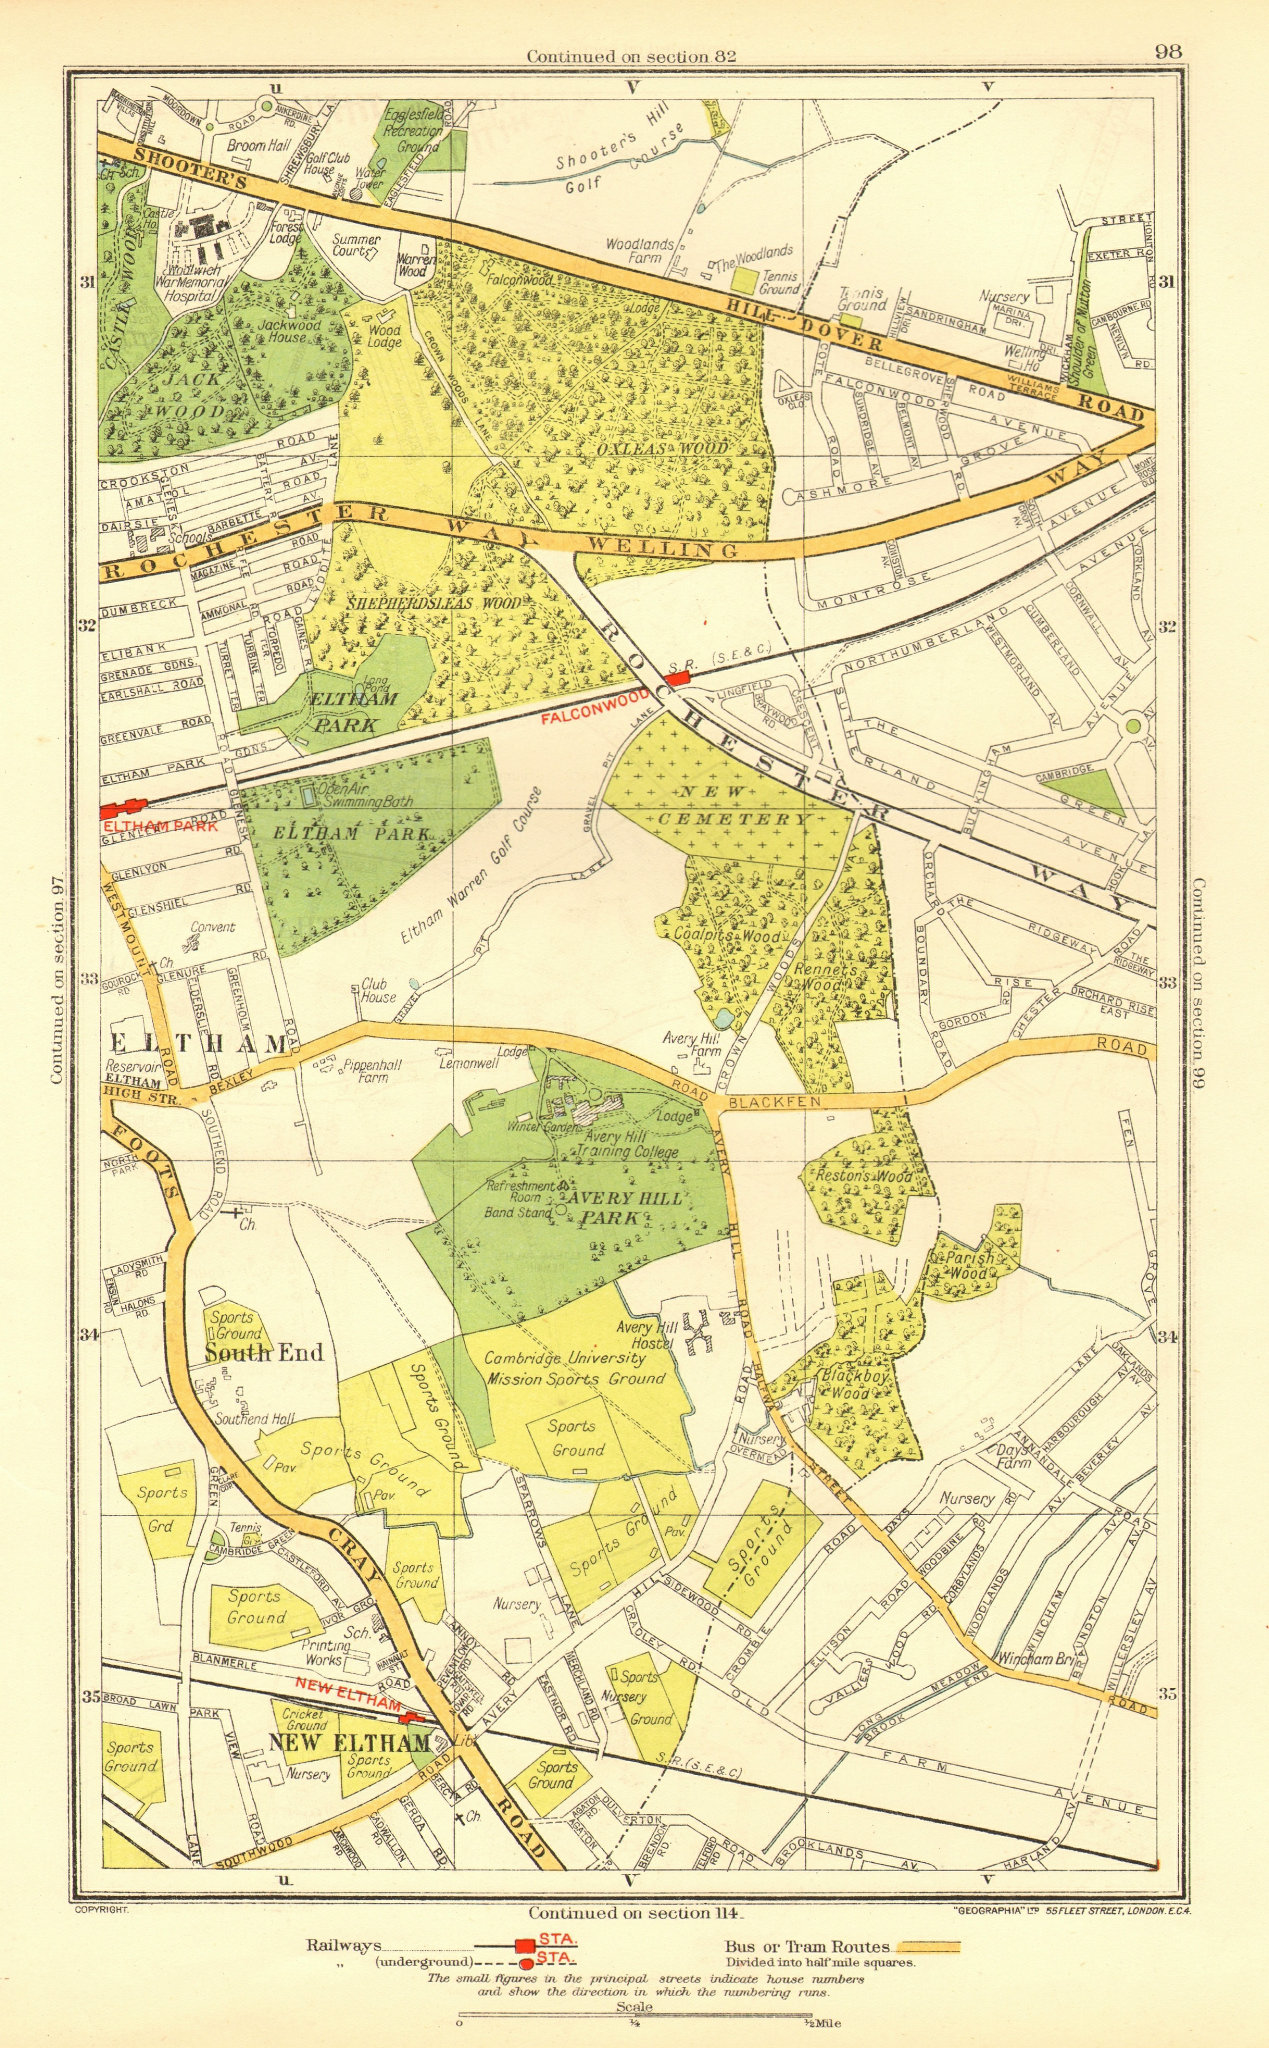 Associate Product LONDON. New Eltham Shooter's Hill South End Eltham Park Pope Street 1937 map